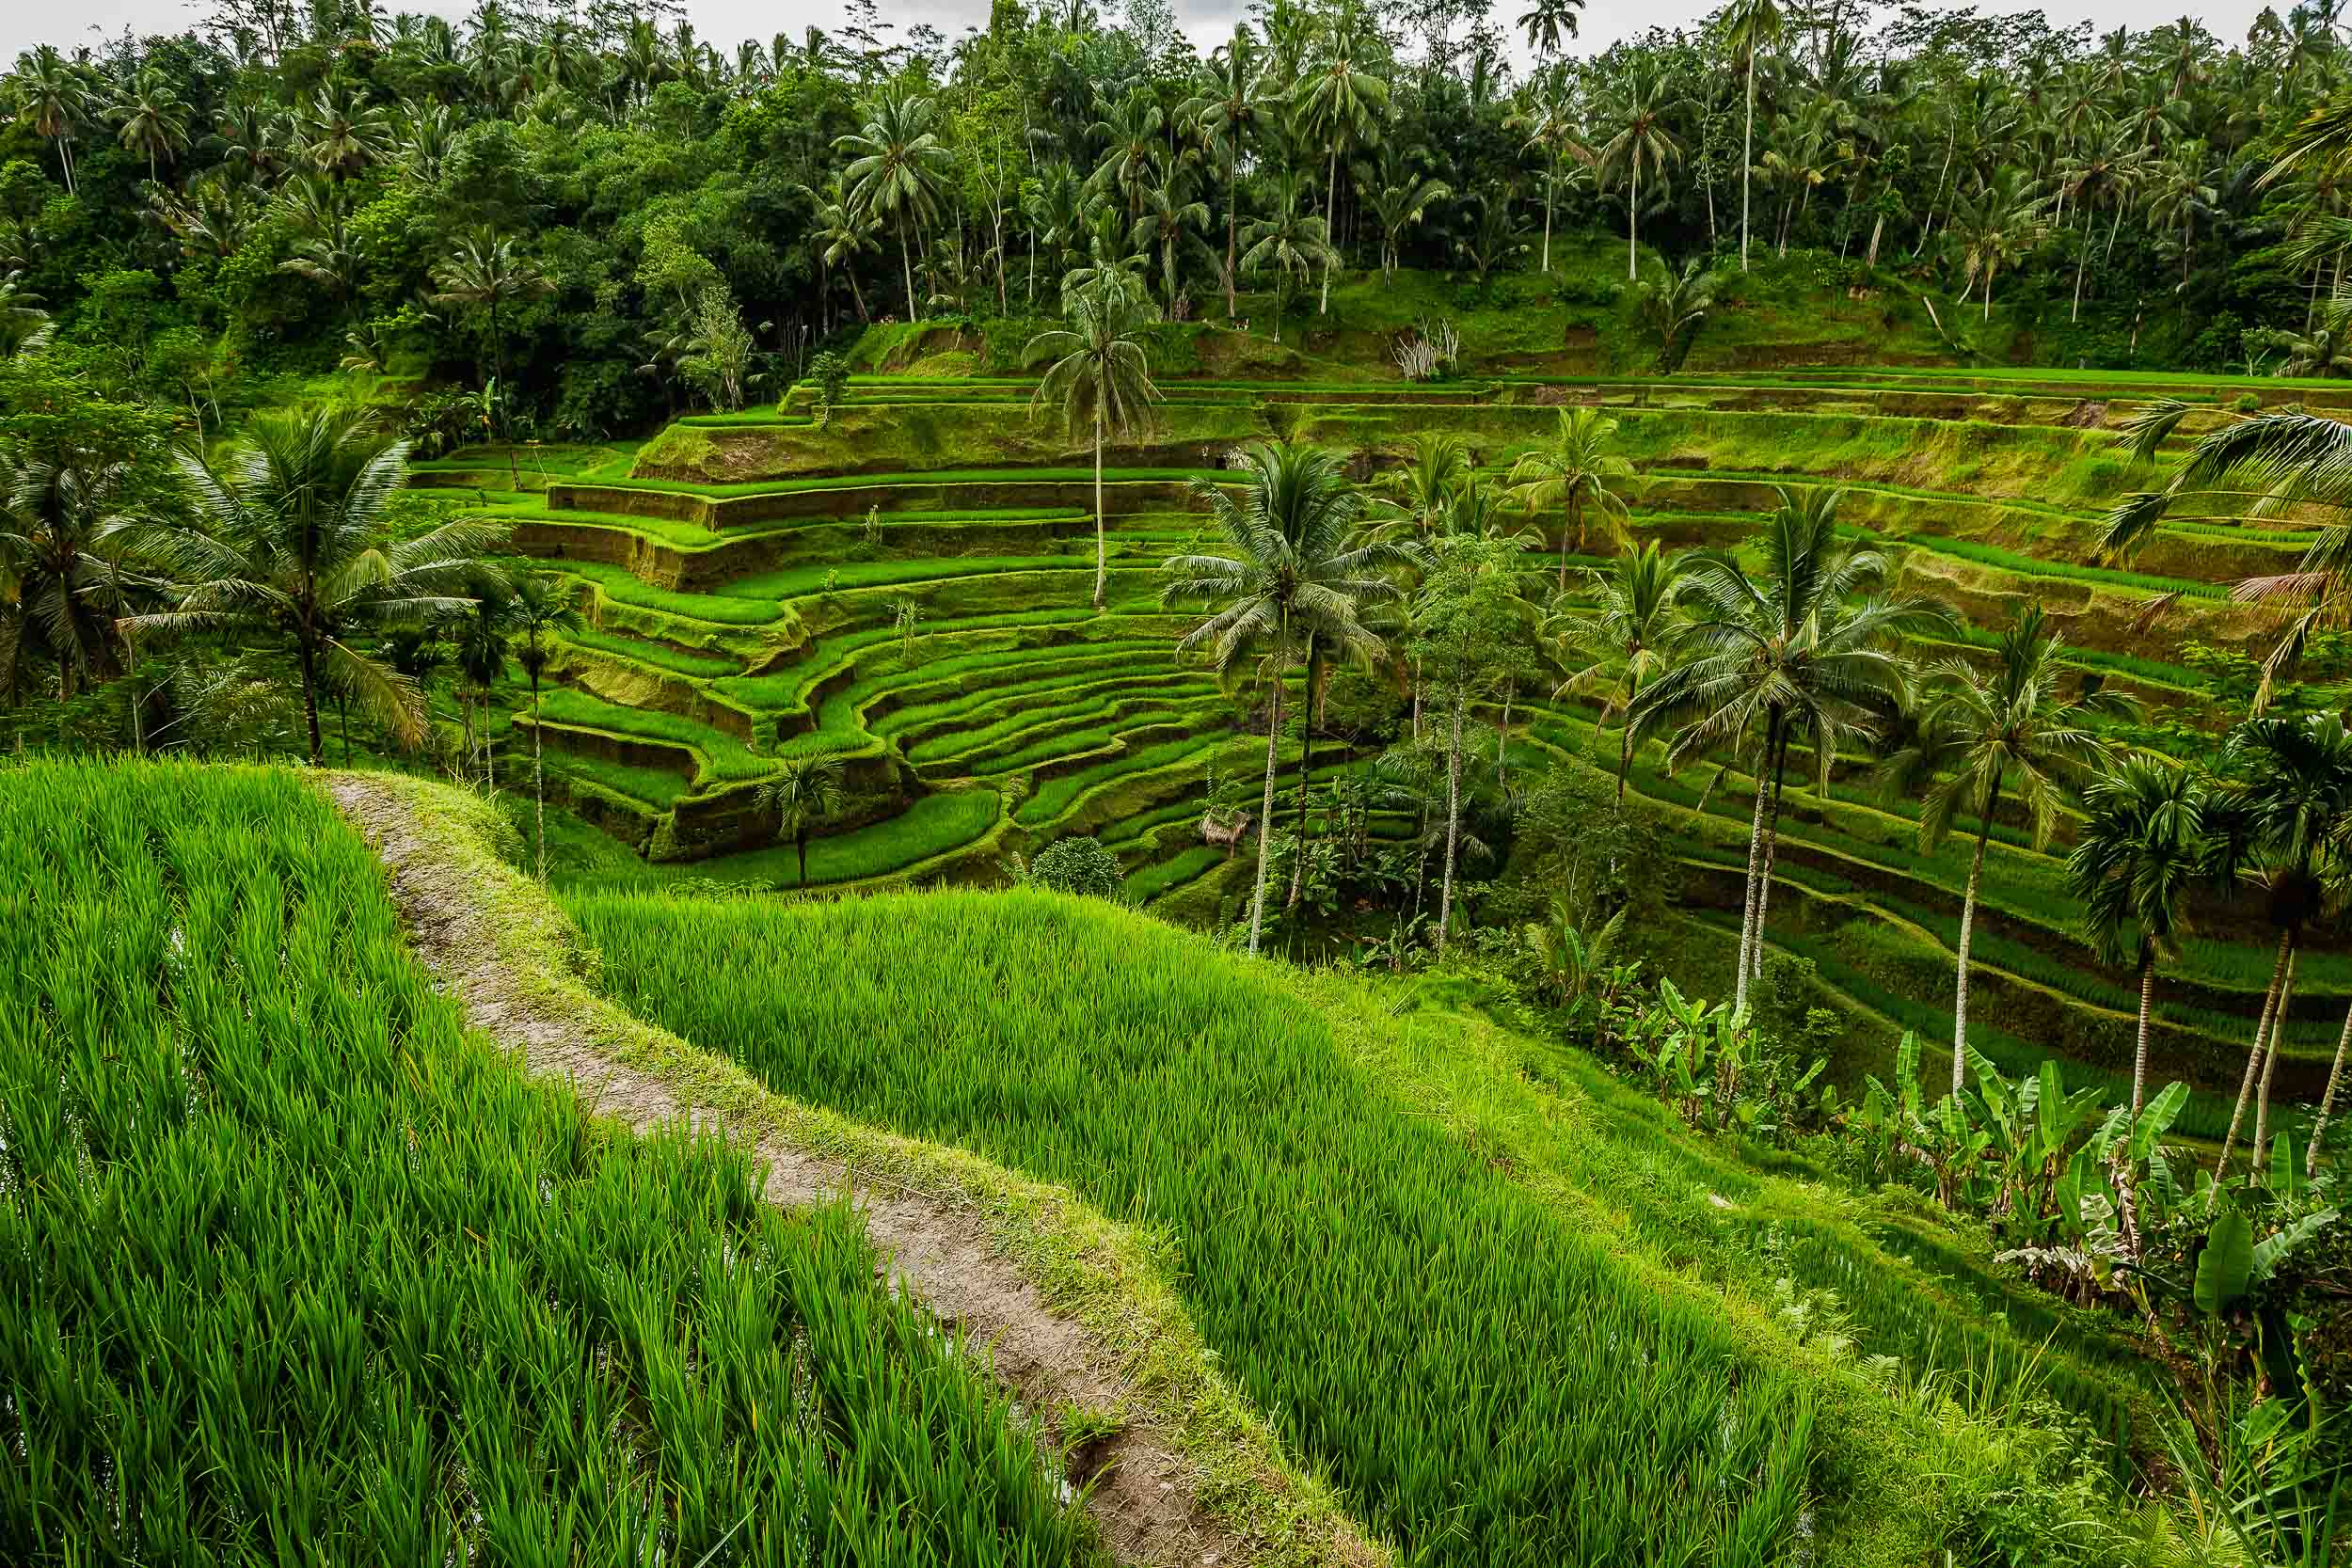 The lush and verdant    Tegalalang rice terrace    near the town of    Ubud    on the island of    Bali, Indonesia   .